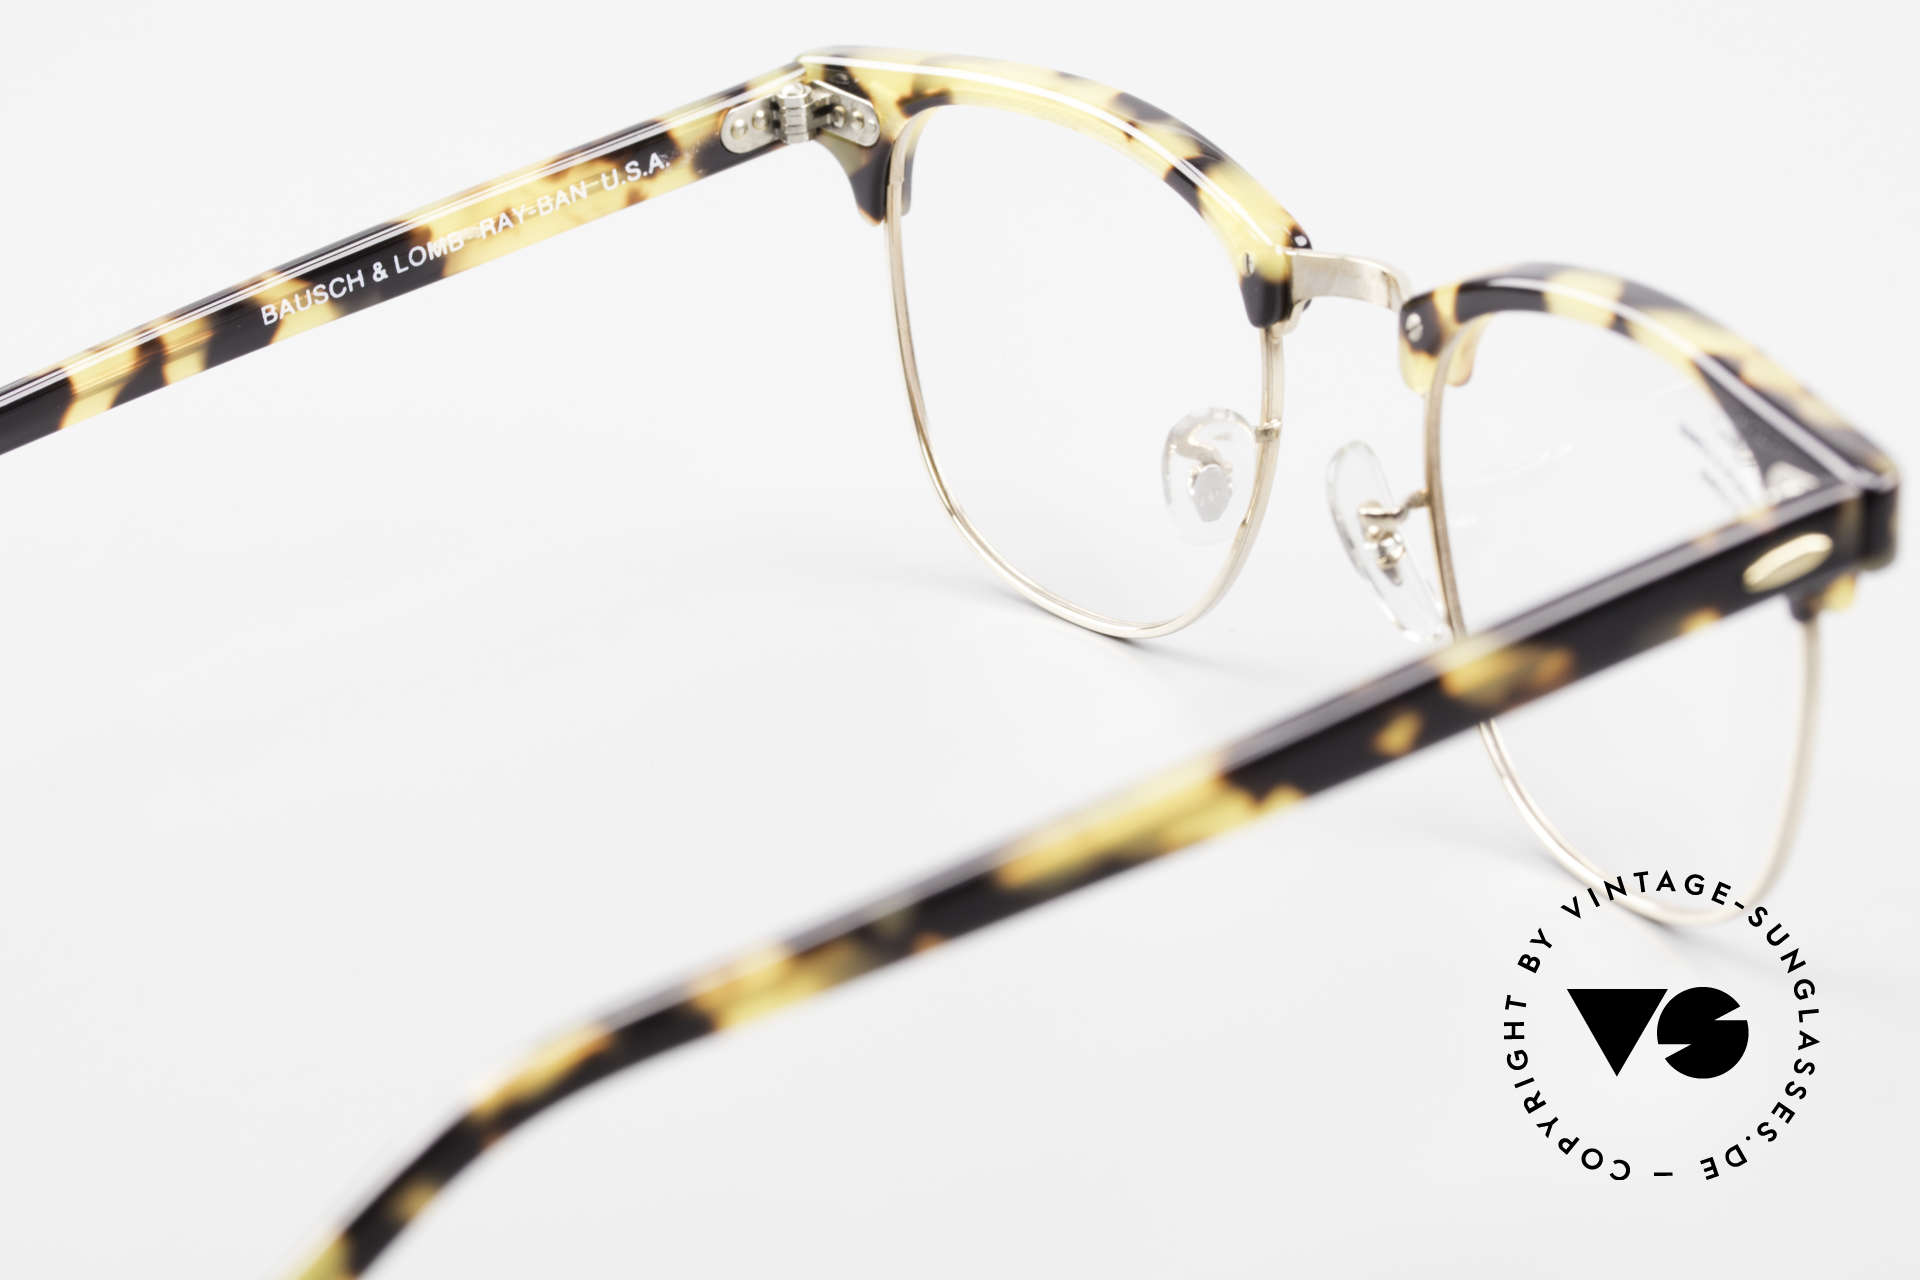 Ray Ban Clubmaster Limited Edition Frame USA B&L, NO RETRO frame, but a 25 years old B&L original, Made for Men and Women